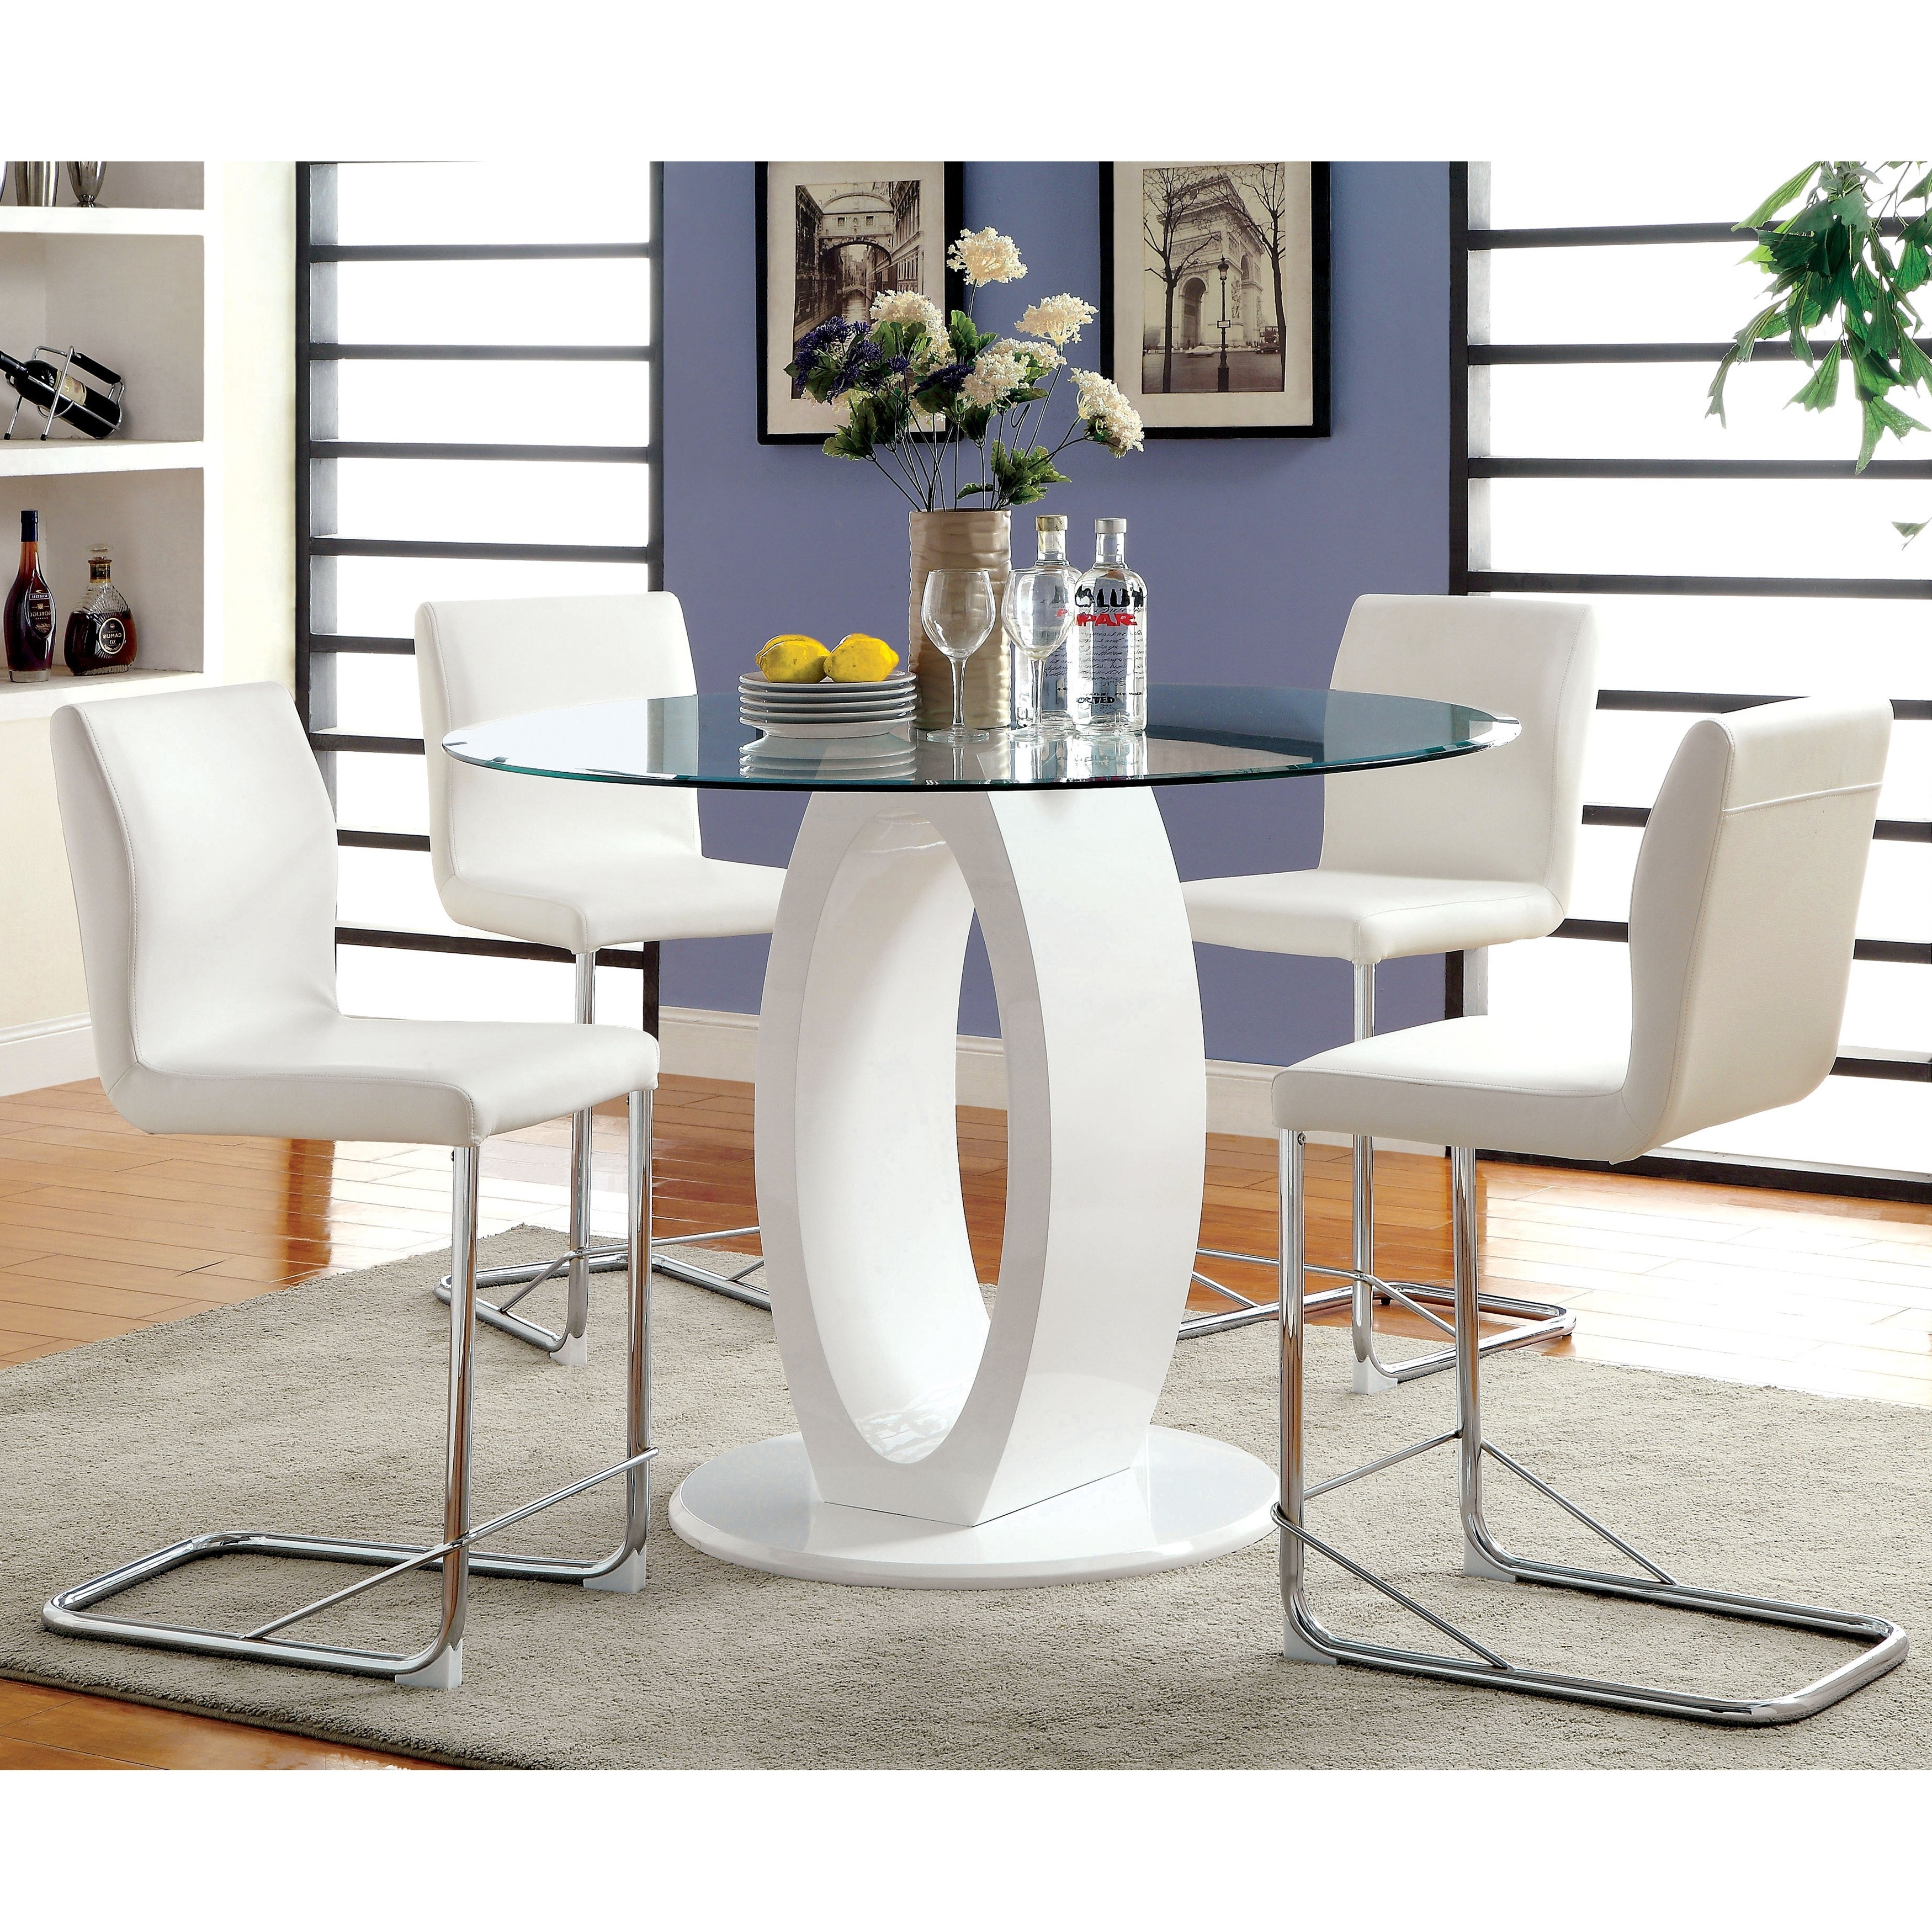 Furniture Of America Olgette Contemporary High Gloss Round Dining Table Pertaining To Favorite Hi Gloss Dining Tables Sets (View 12 of 25)